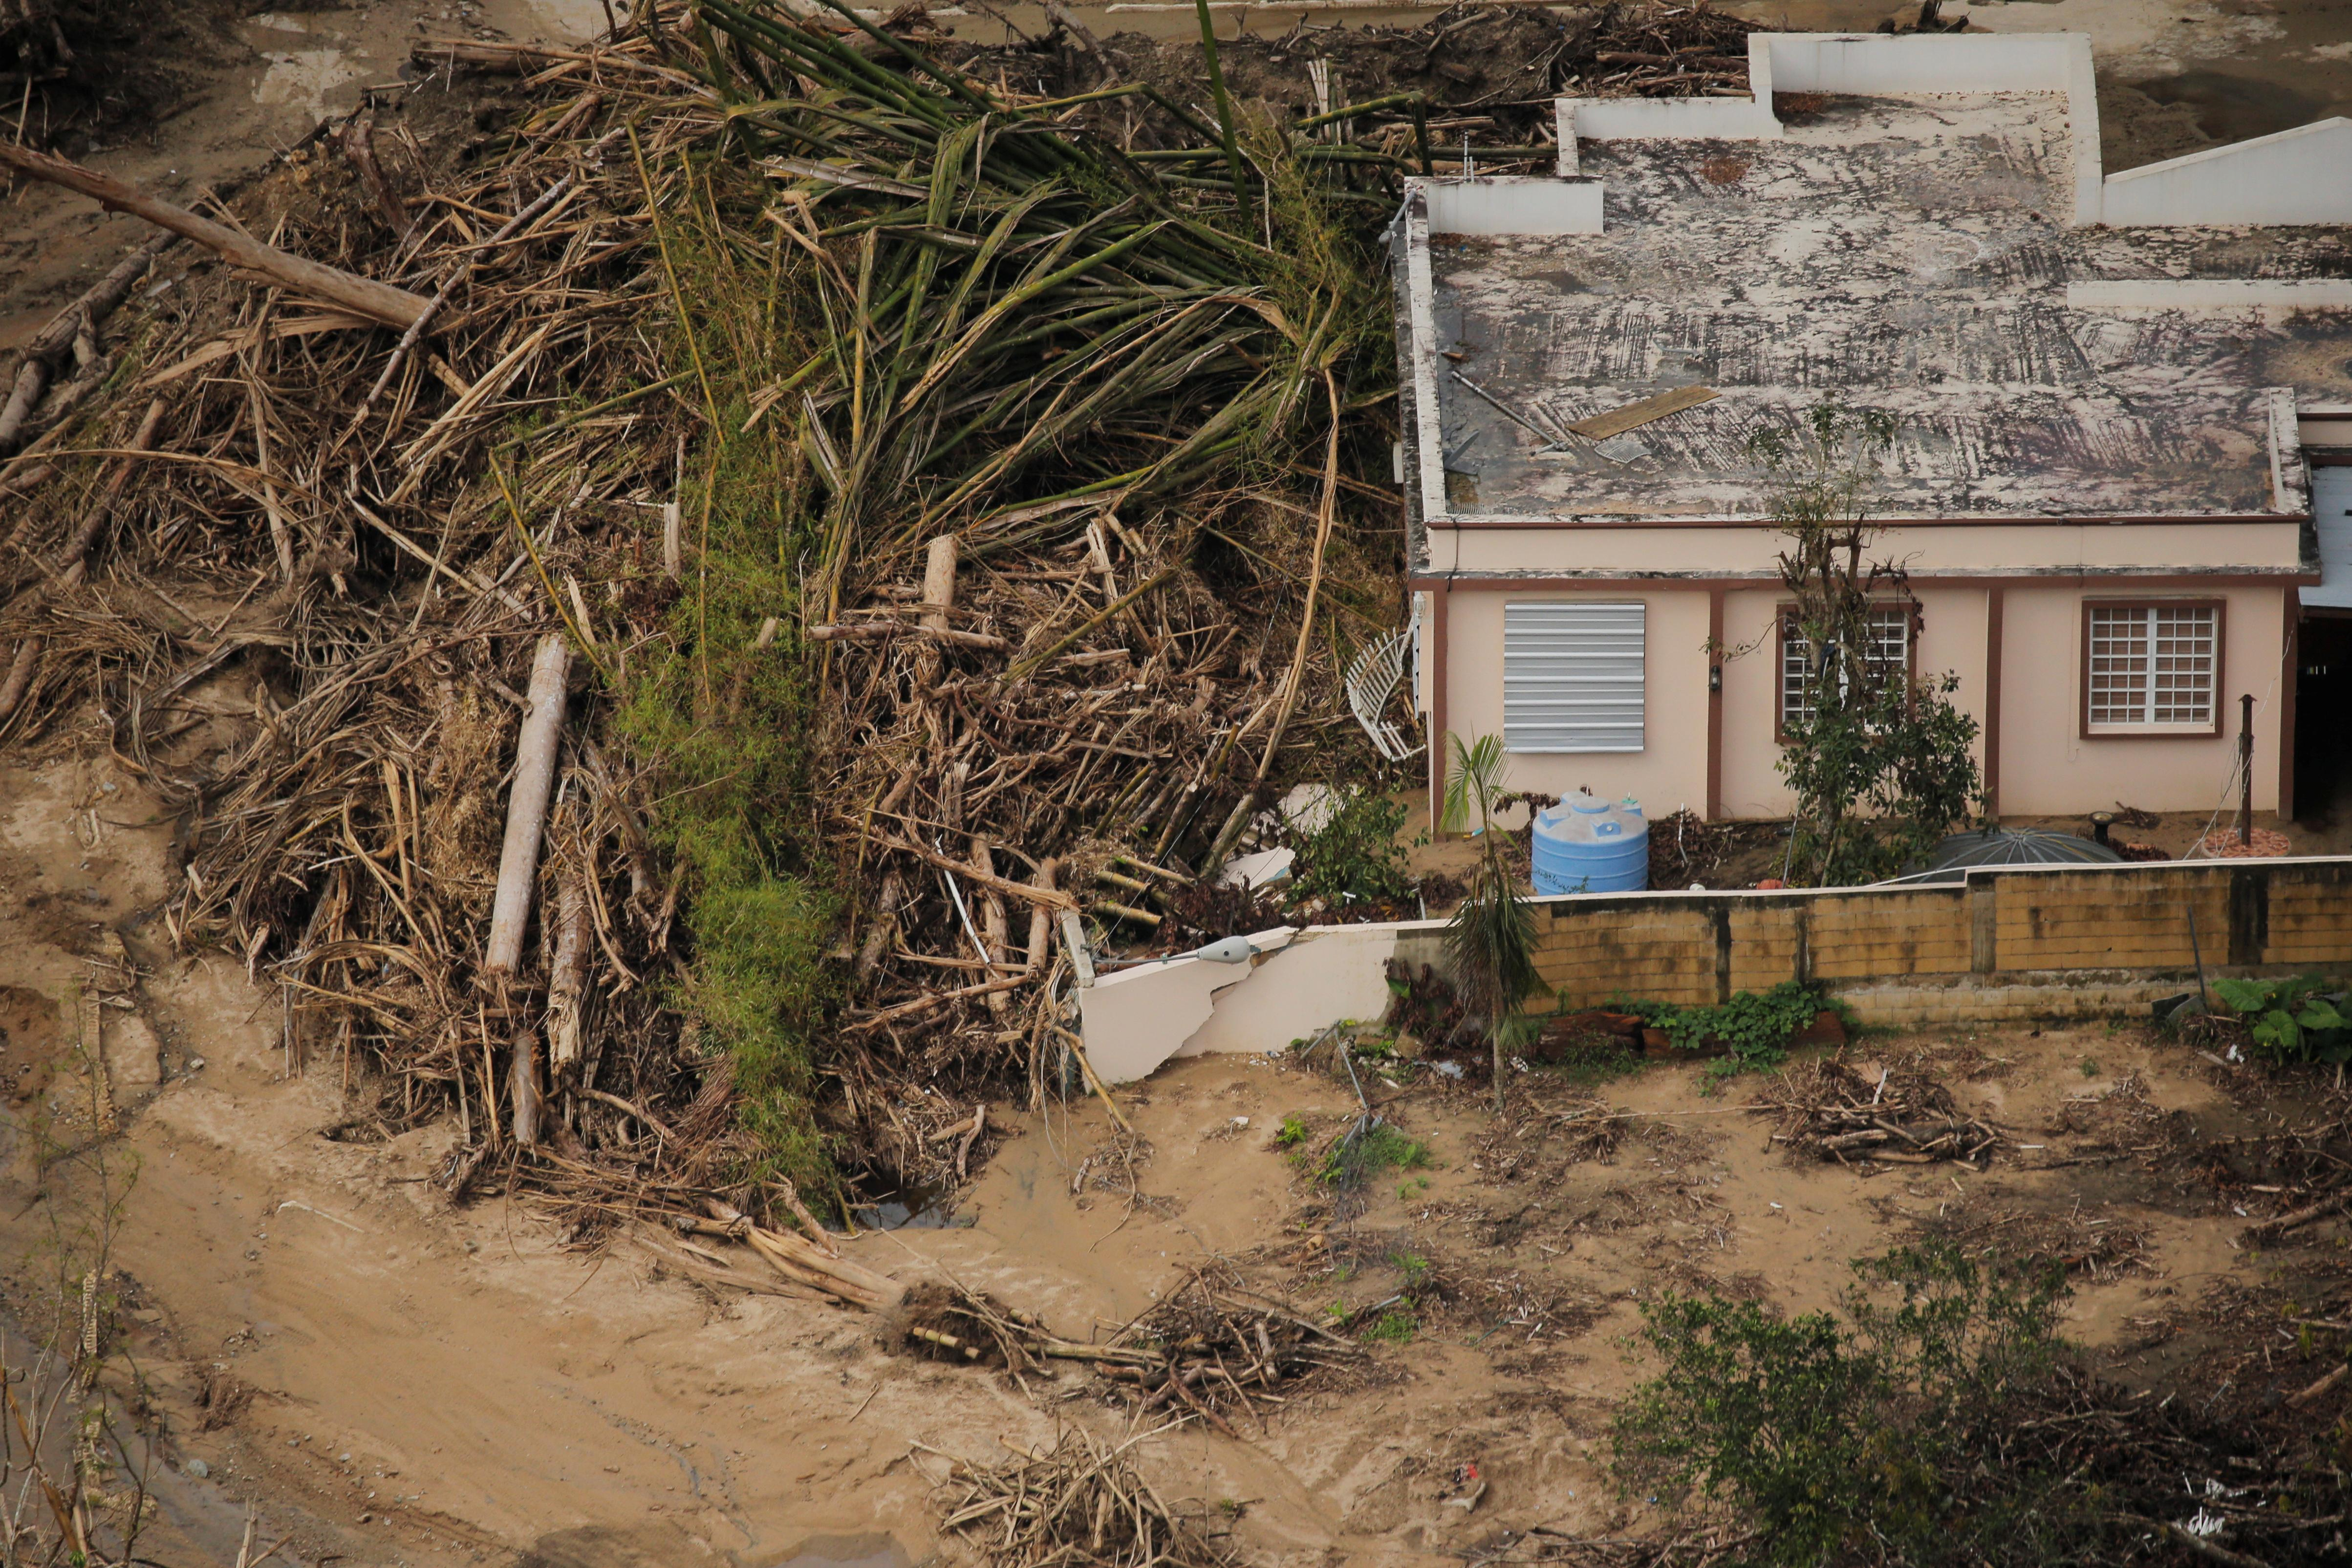 <p>Debris left by a flooded river is piled against a home, seen from the air, during recovery efforts following Hurricane Maria near Utuado, Puerto Rico, Oct.10, 2017. (Photo: Lucas Jackson/Reuters) </p>